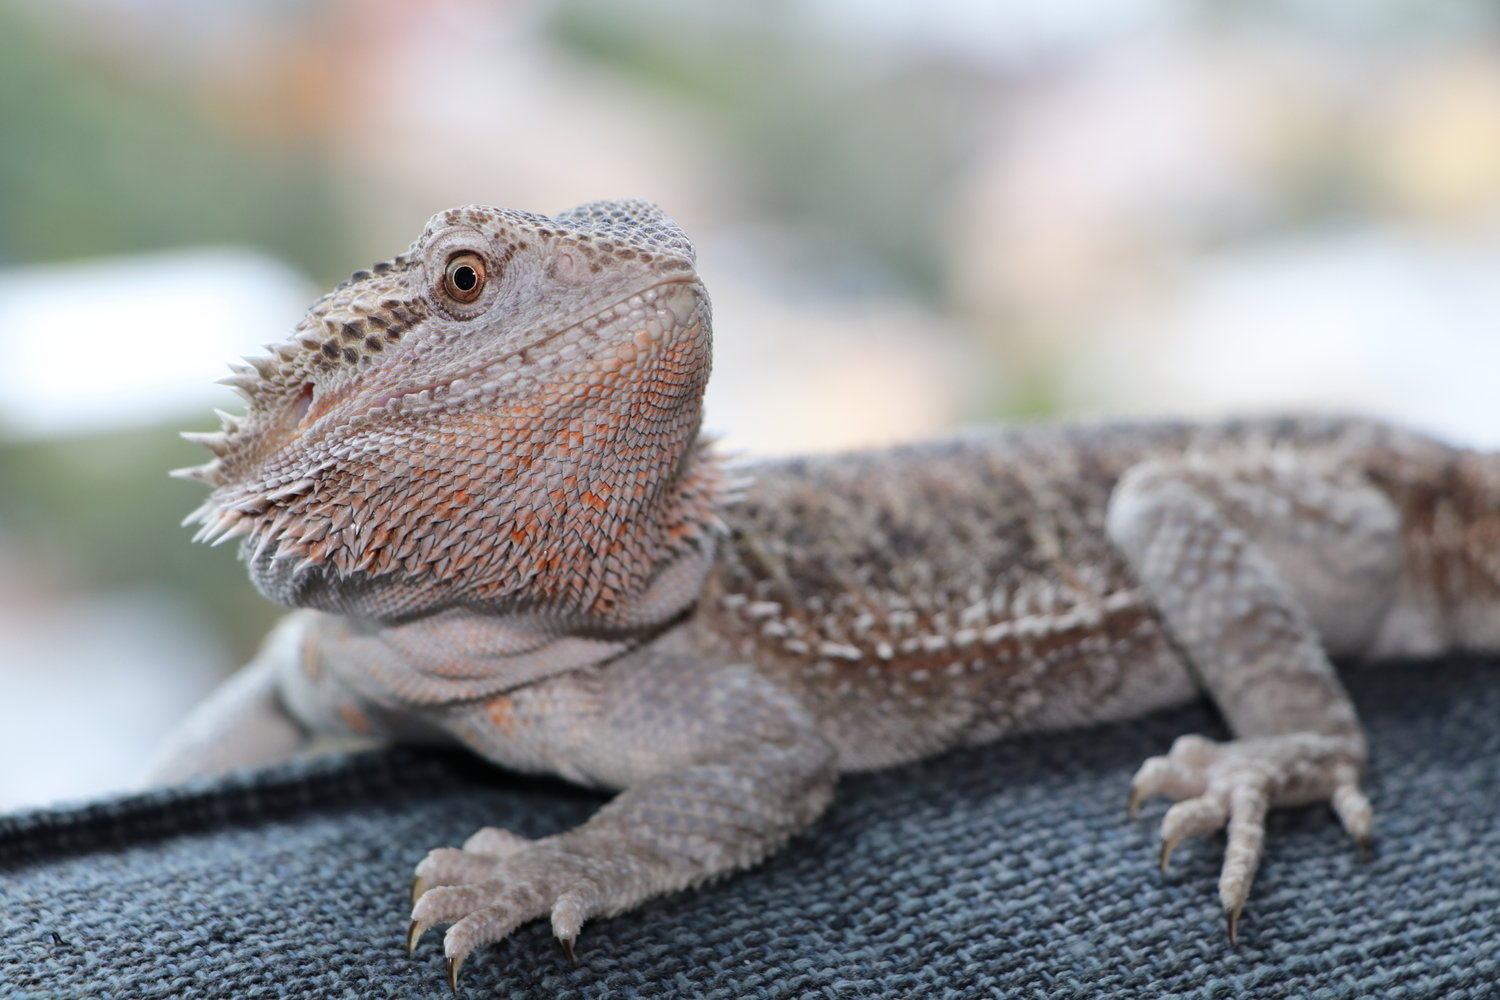 One Of The Leatherback Bearded Dragons At Northton Reptile Centre Tortoise Care Chameleon Lizard